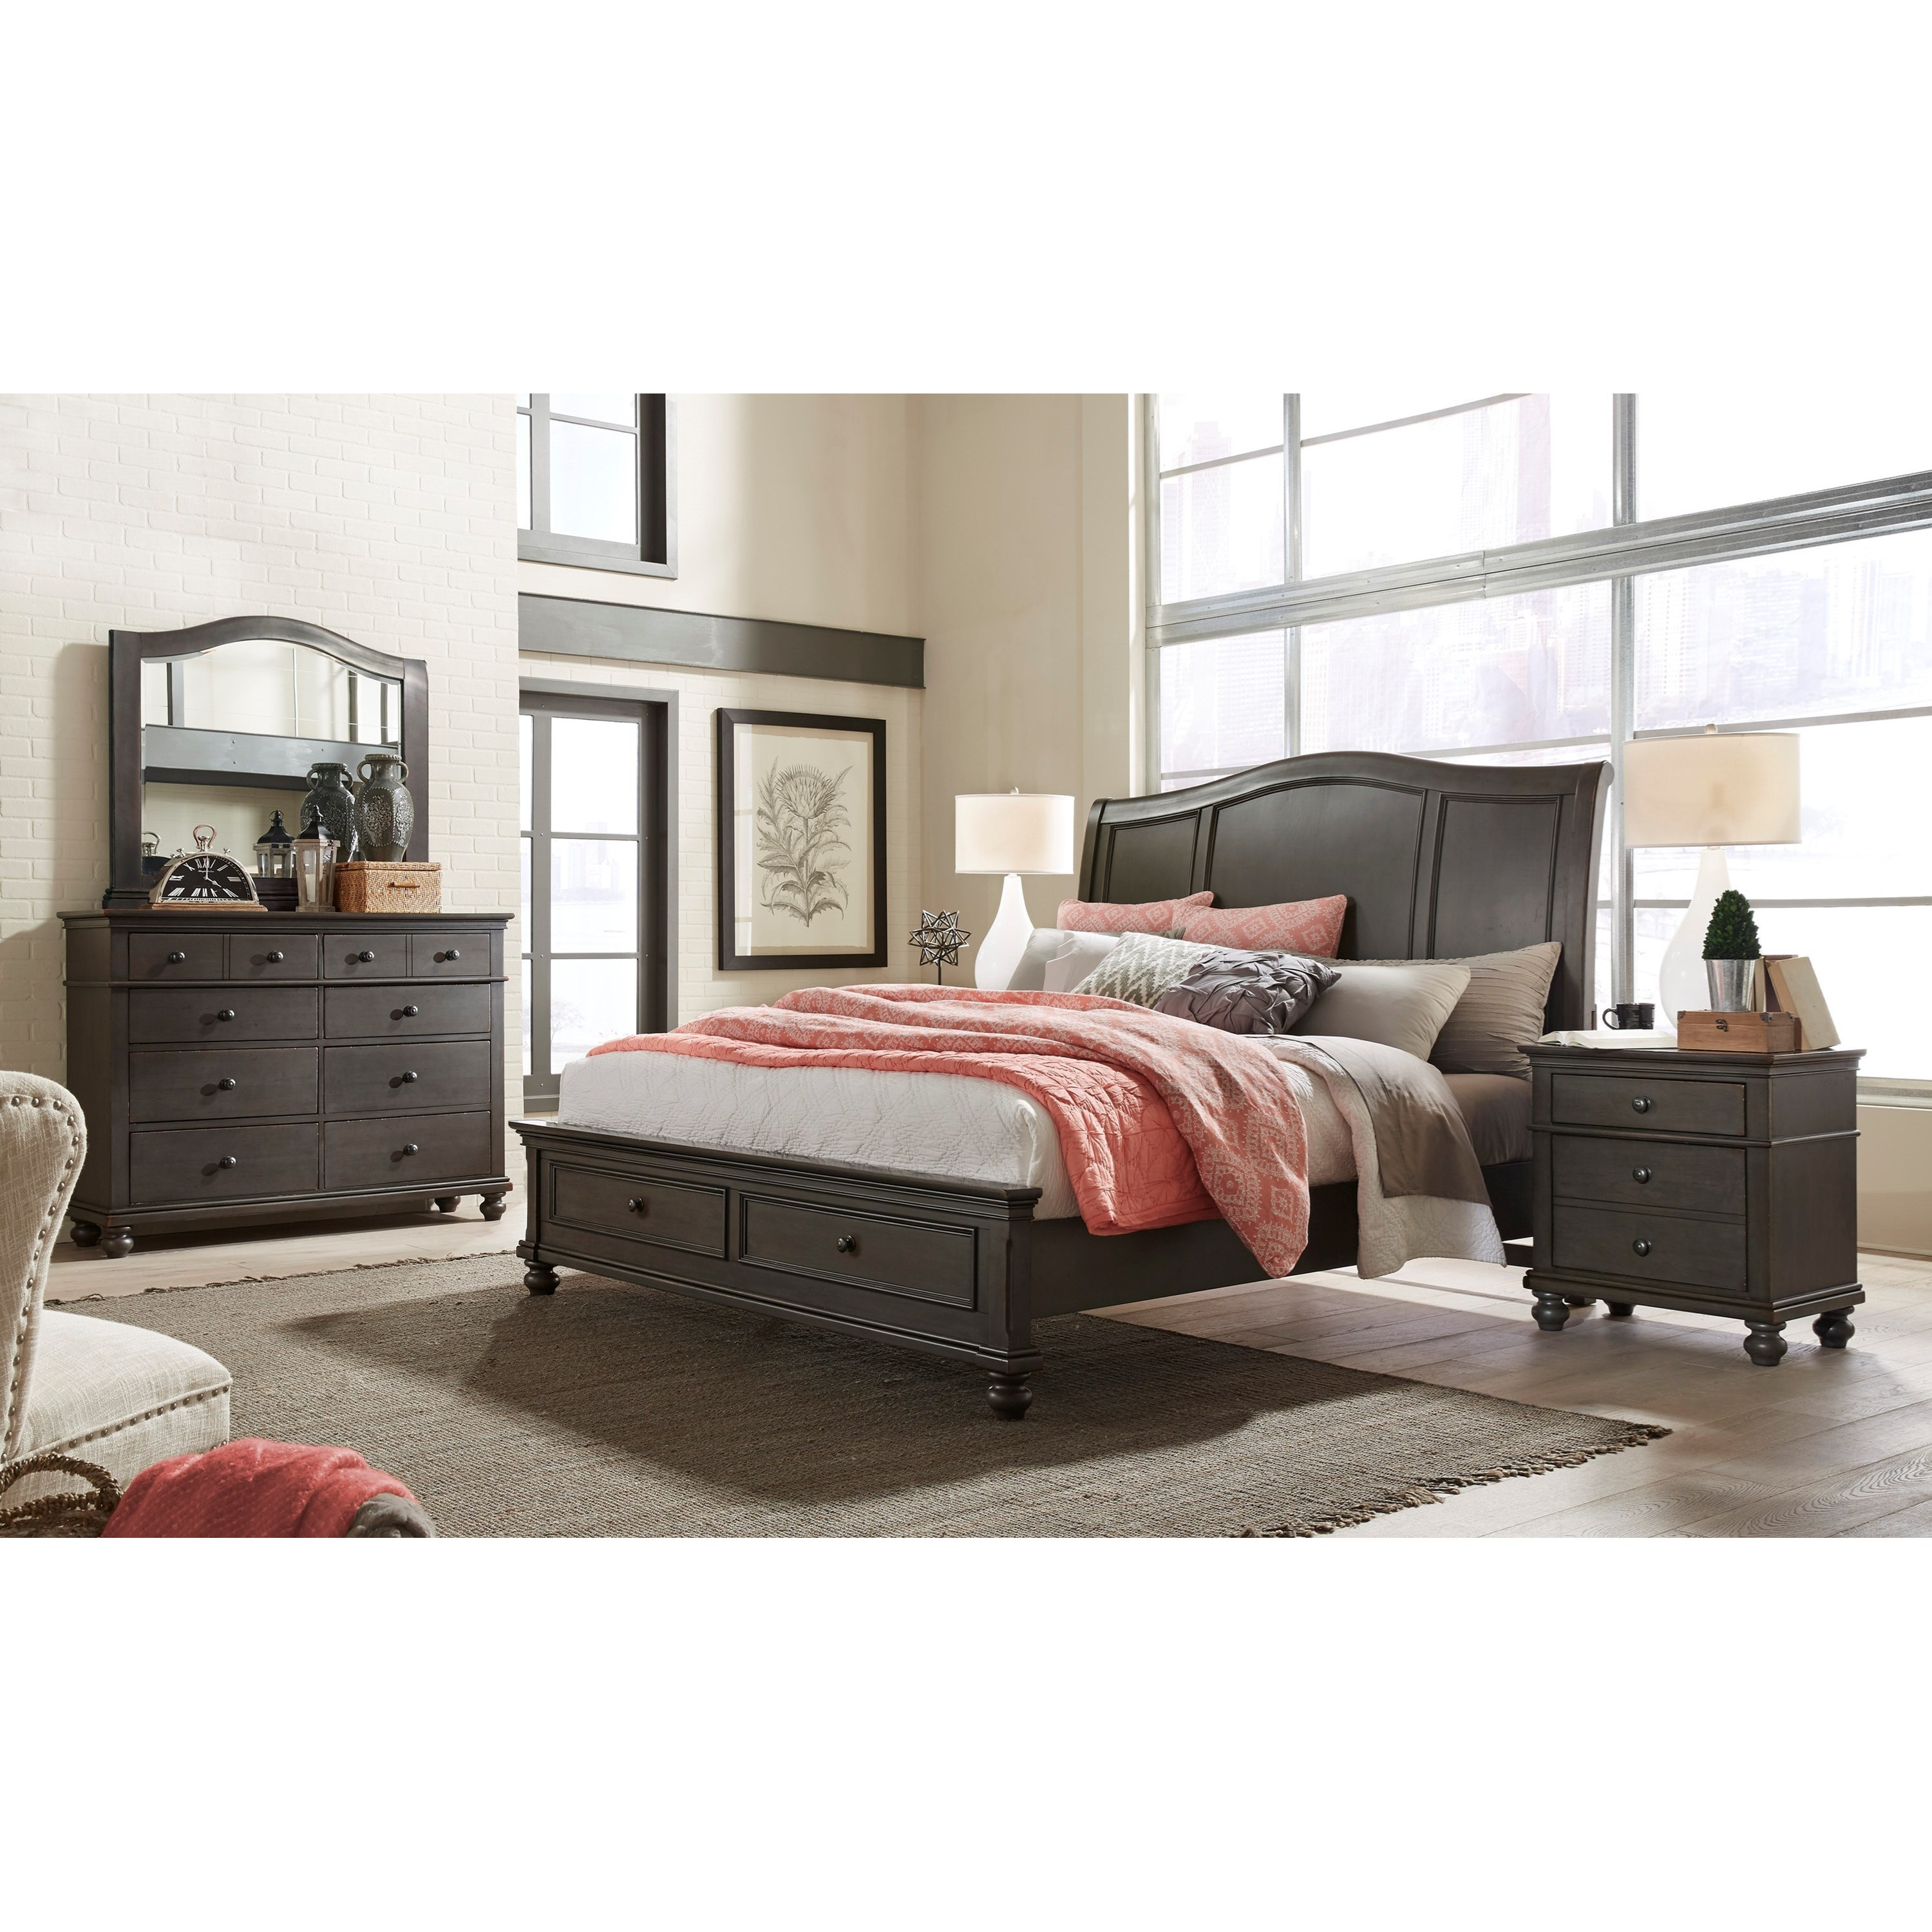 Aspenhome oxford california king bedroom group belfort for Bedroom furniture groups